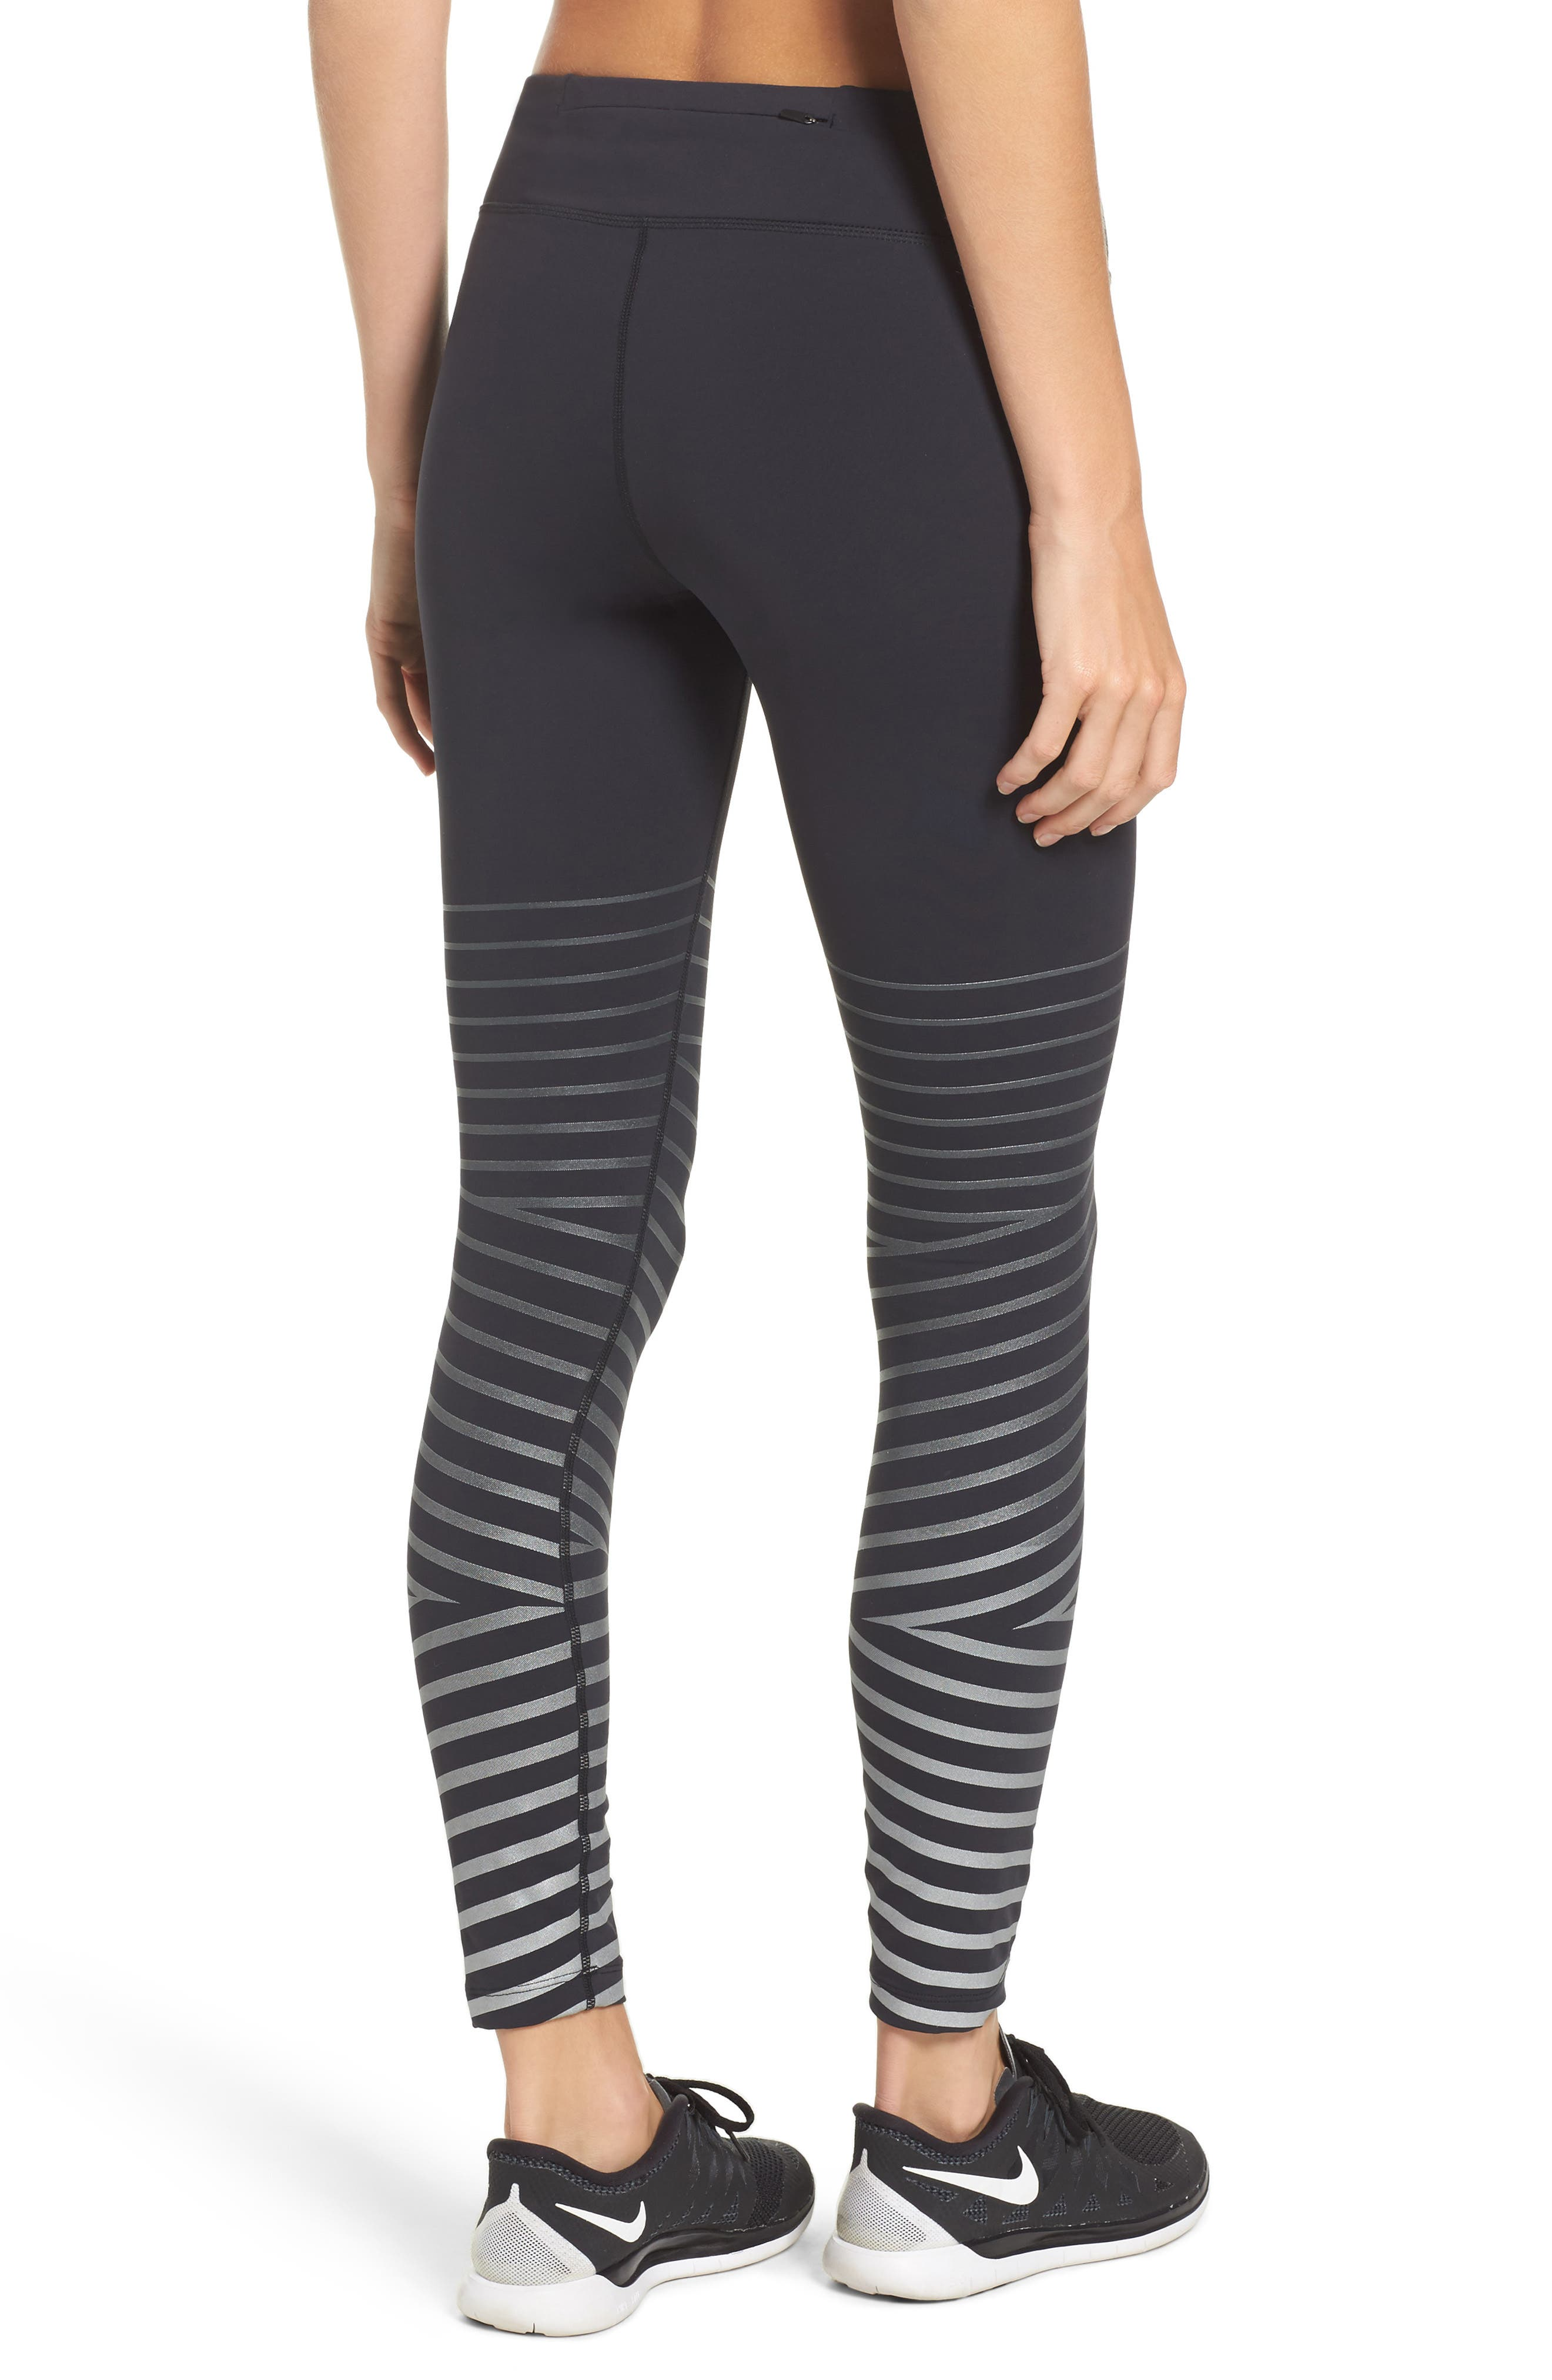 Power Epic Lux Flash Running Tights,                             Alternate thumbnail 2, color,                             Black/ Anthracite